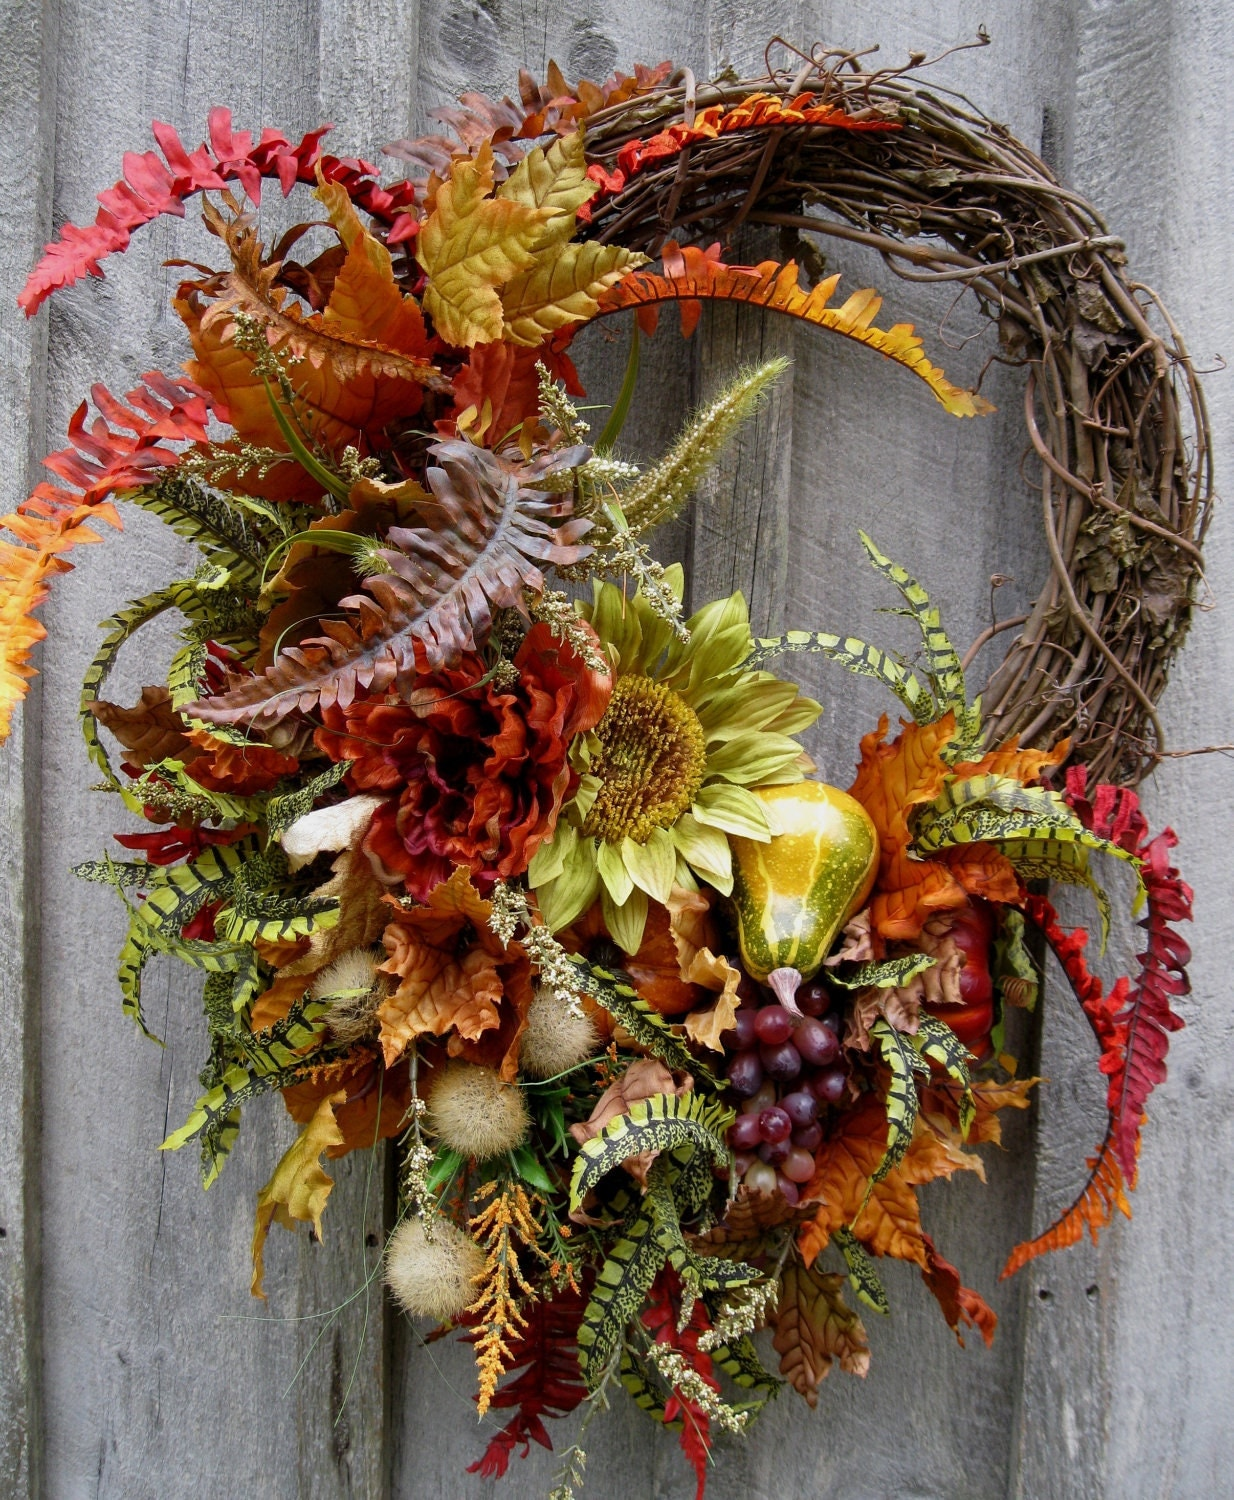 Autumn wreath fall floral designer wreaths sunflowers for Thanksgiving 2016 home decorations